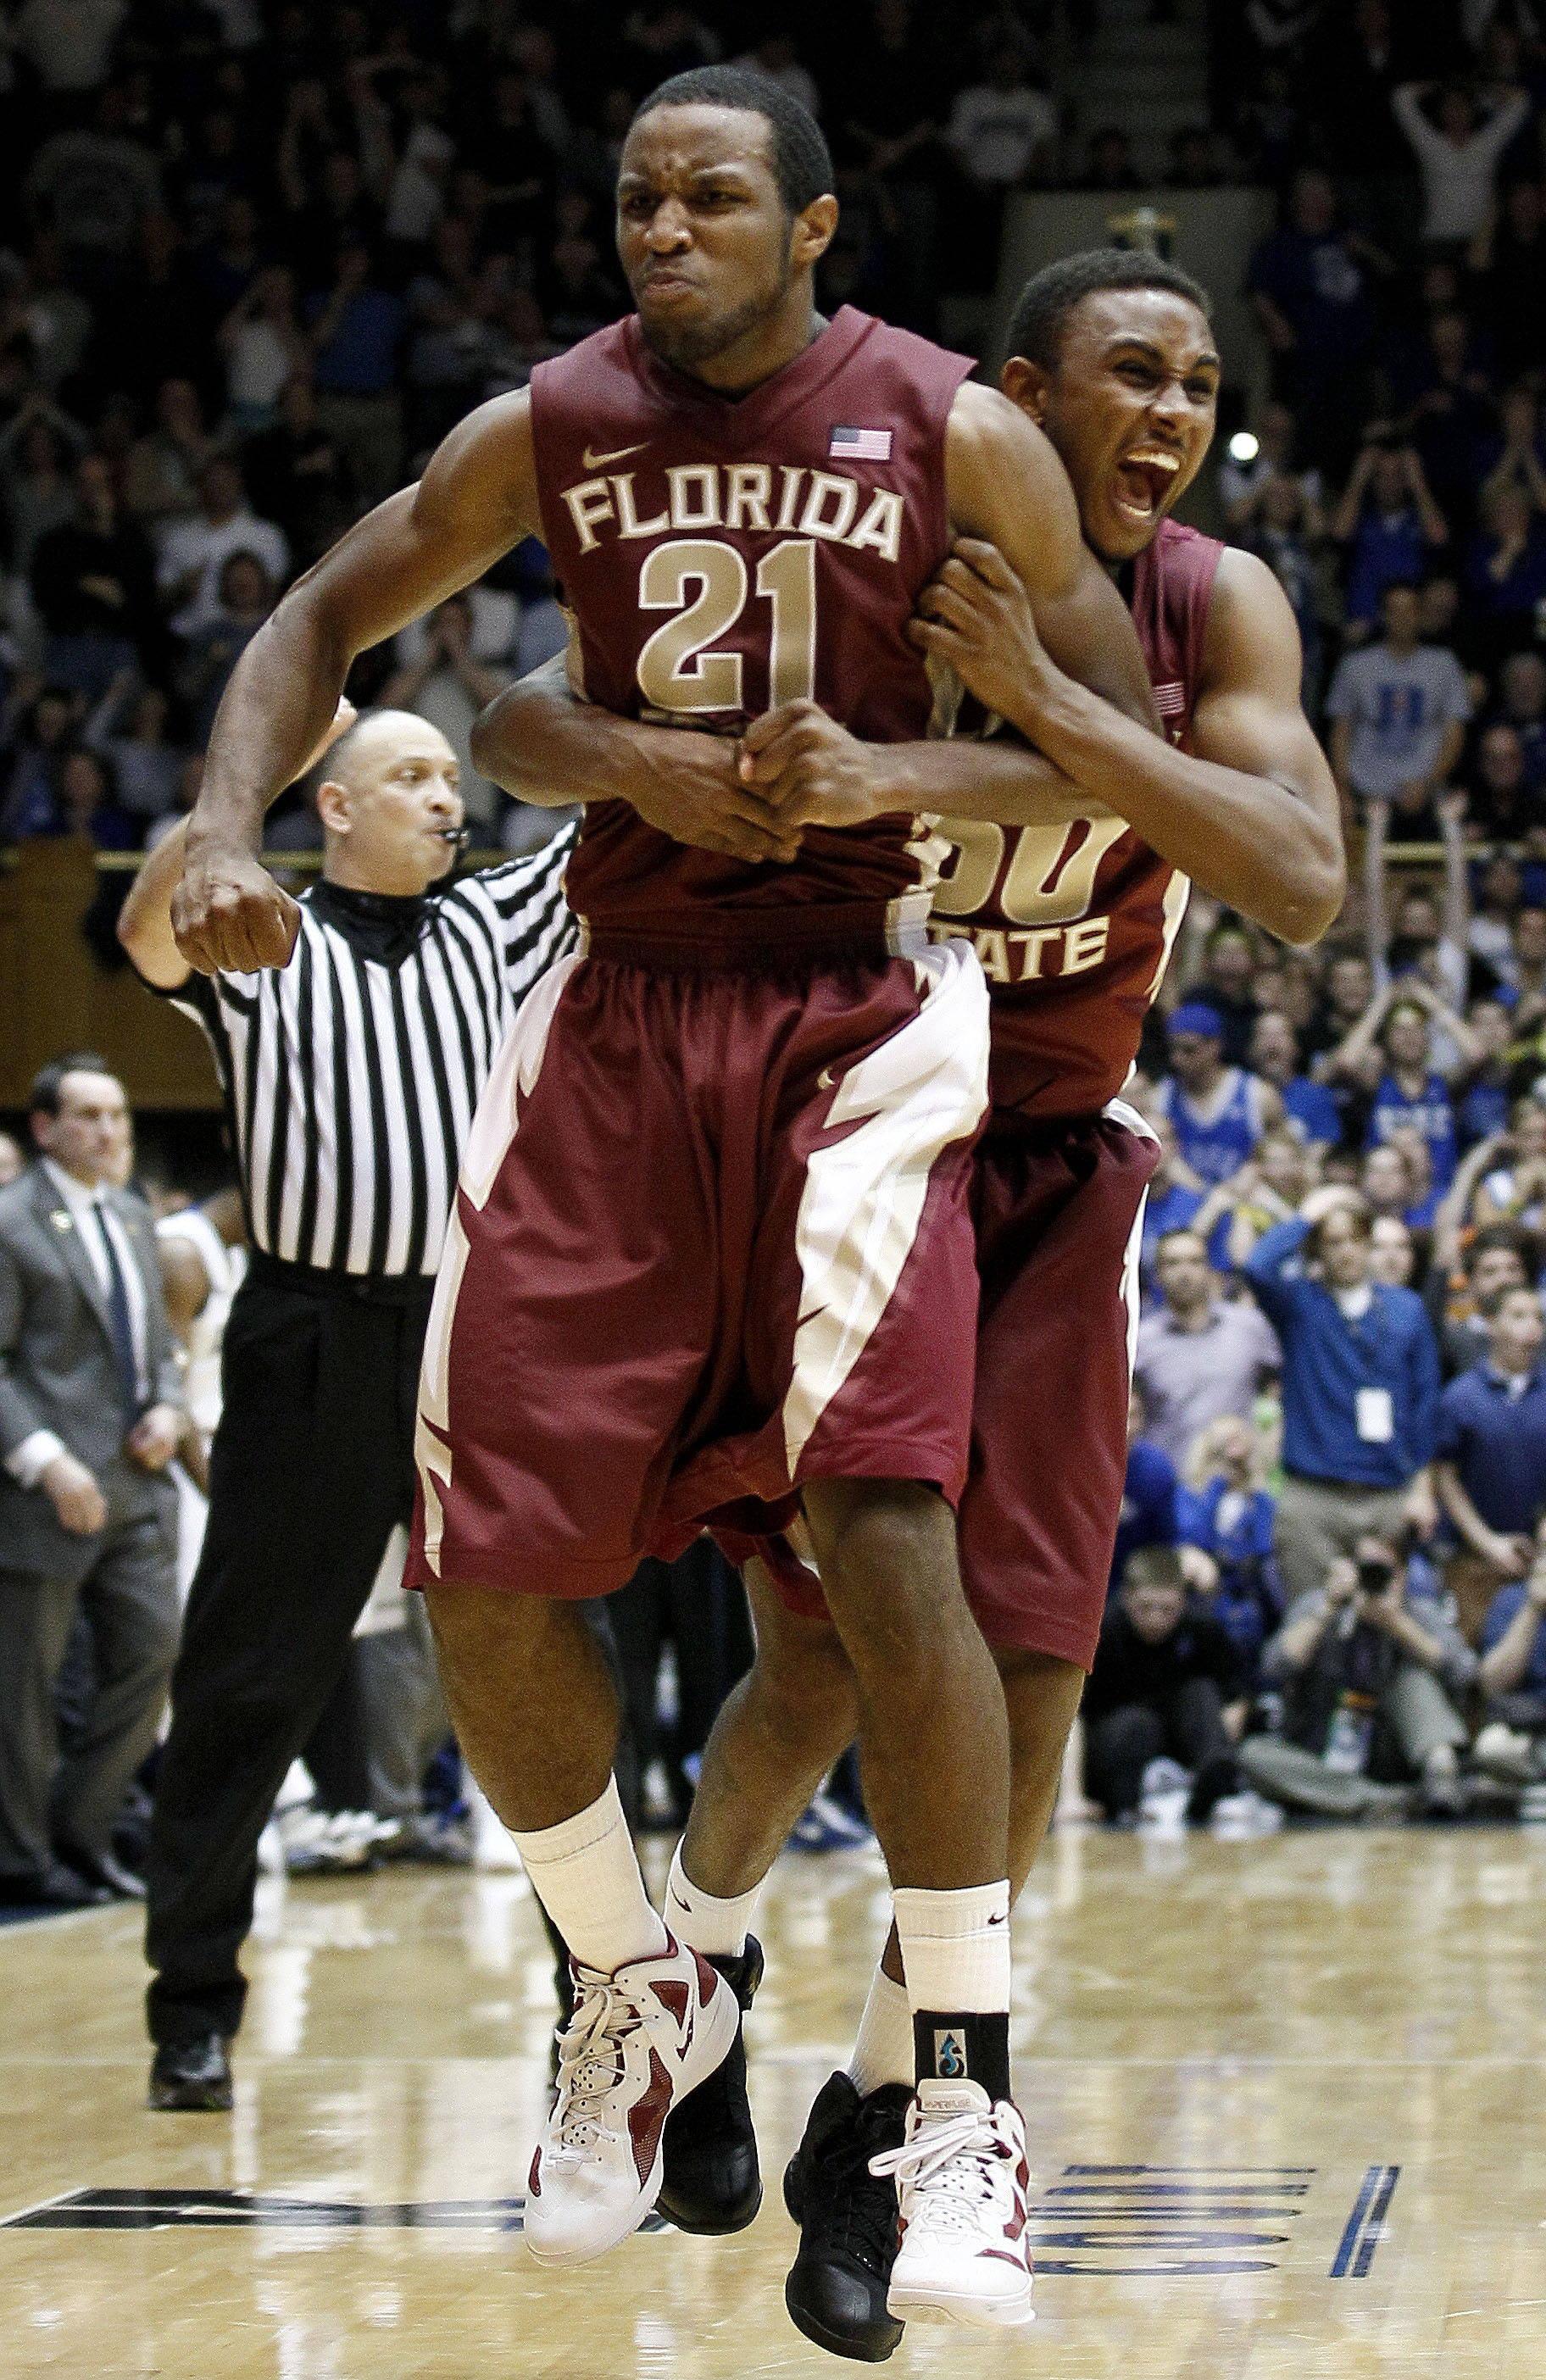 Florida State's Michael Snaer (21) and Ian Miller celebrate Snaer's game-winning shot against Duke during the second half. (AP Photo/Gerry Broome)